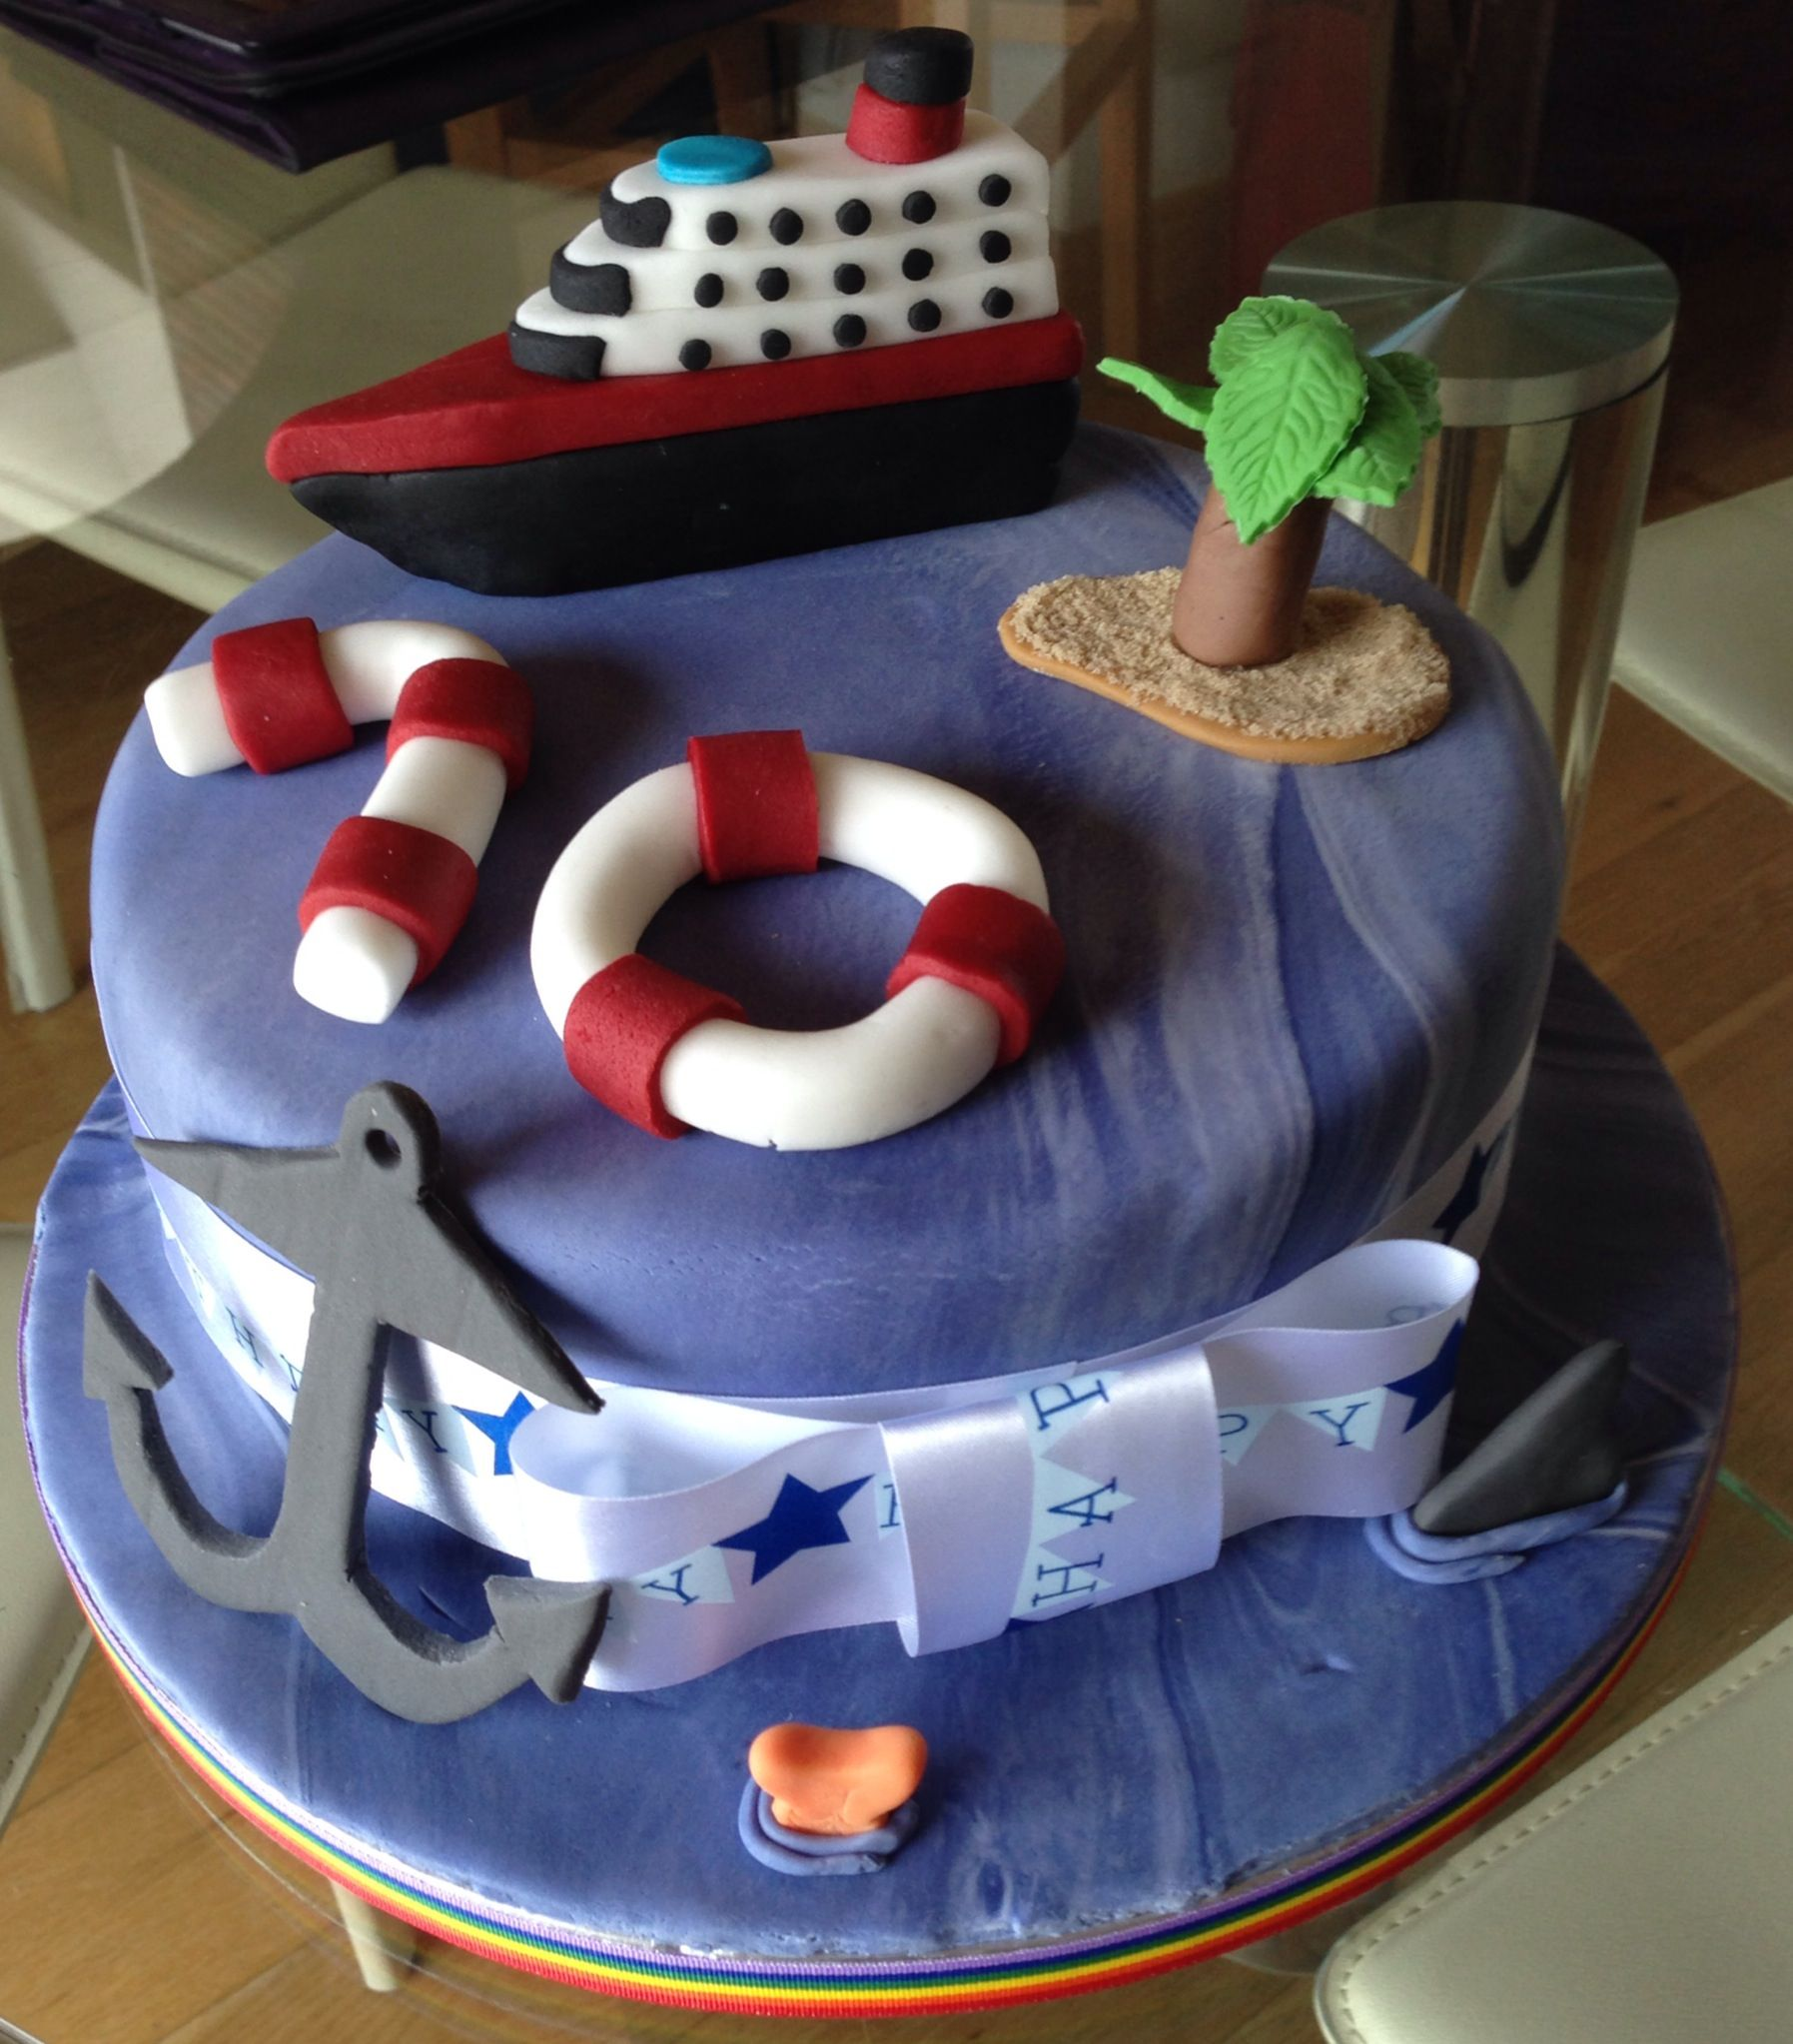 Cruise Ship 70th Birthday Cake wwwfacebookcomBleuBelleDesigns